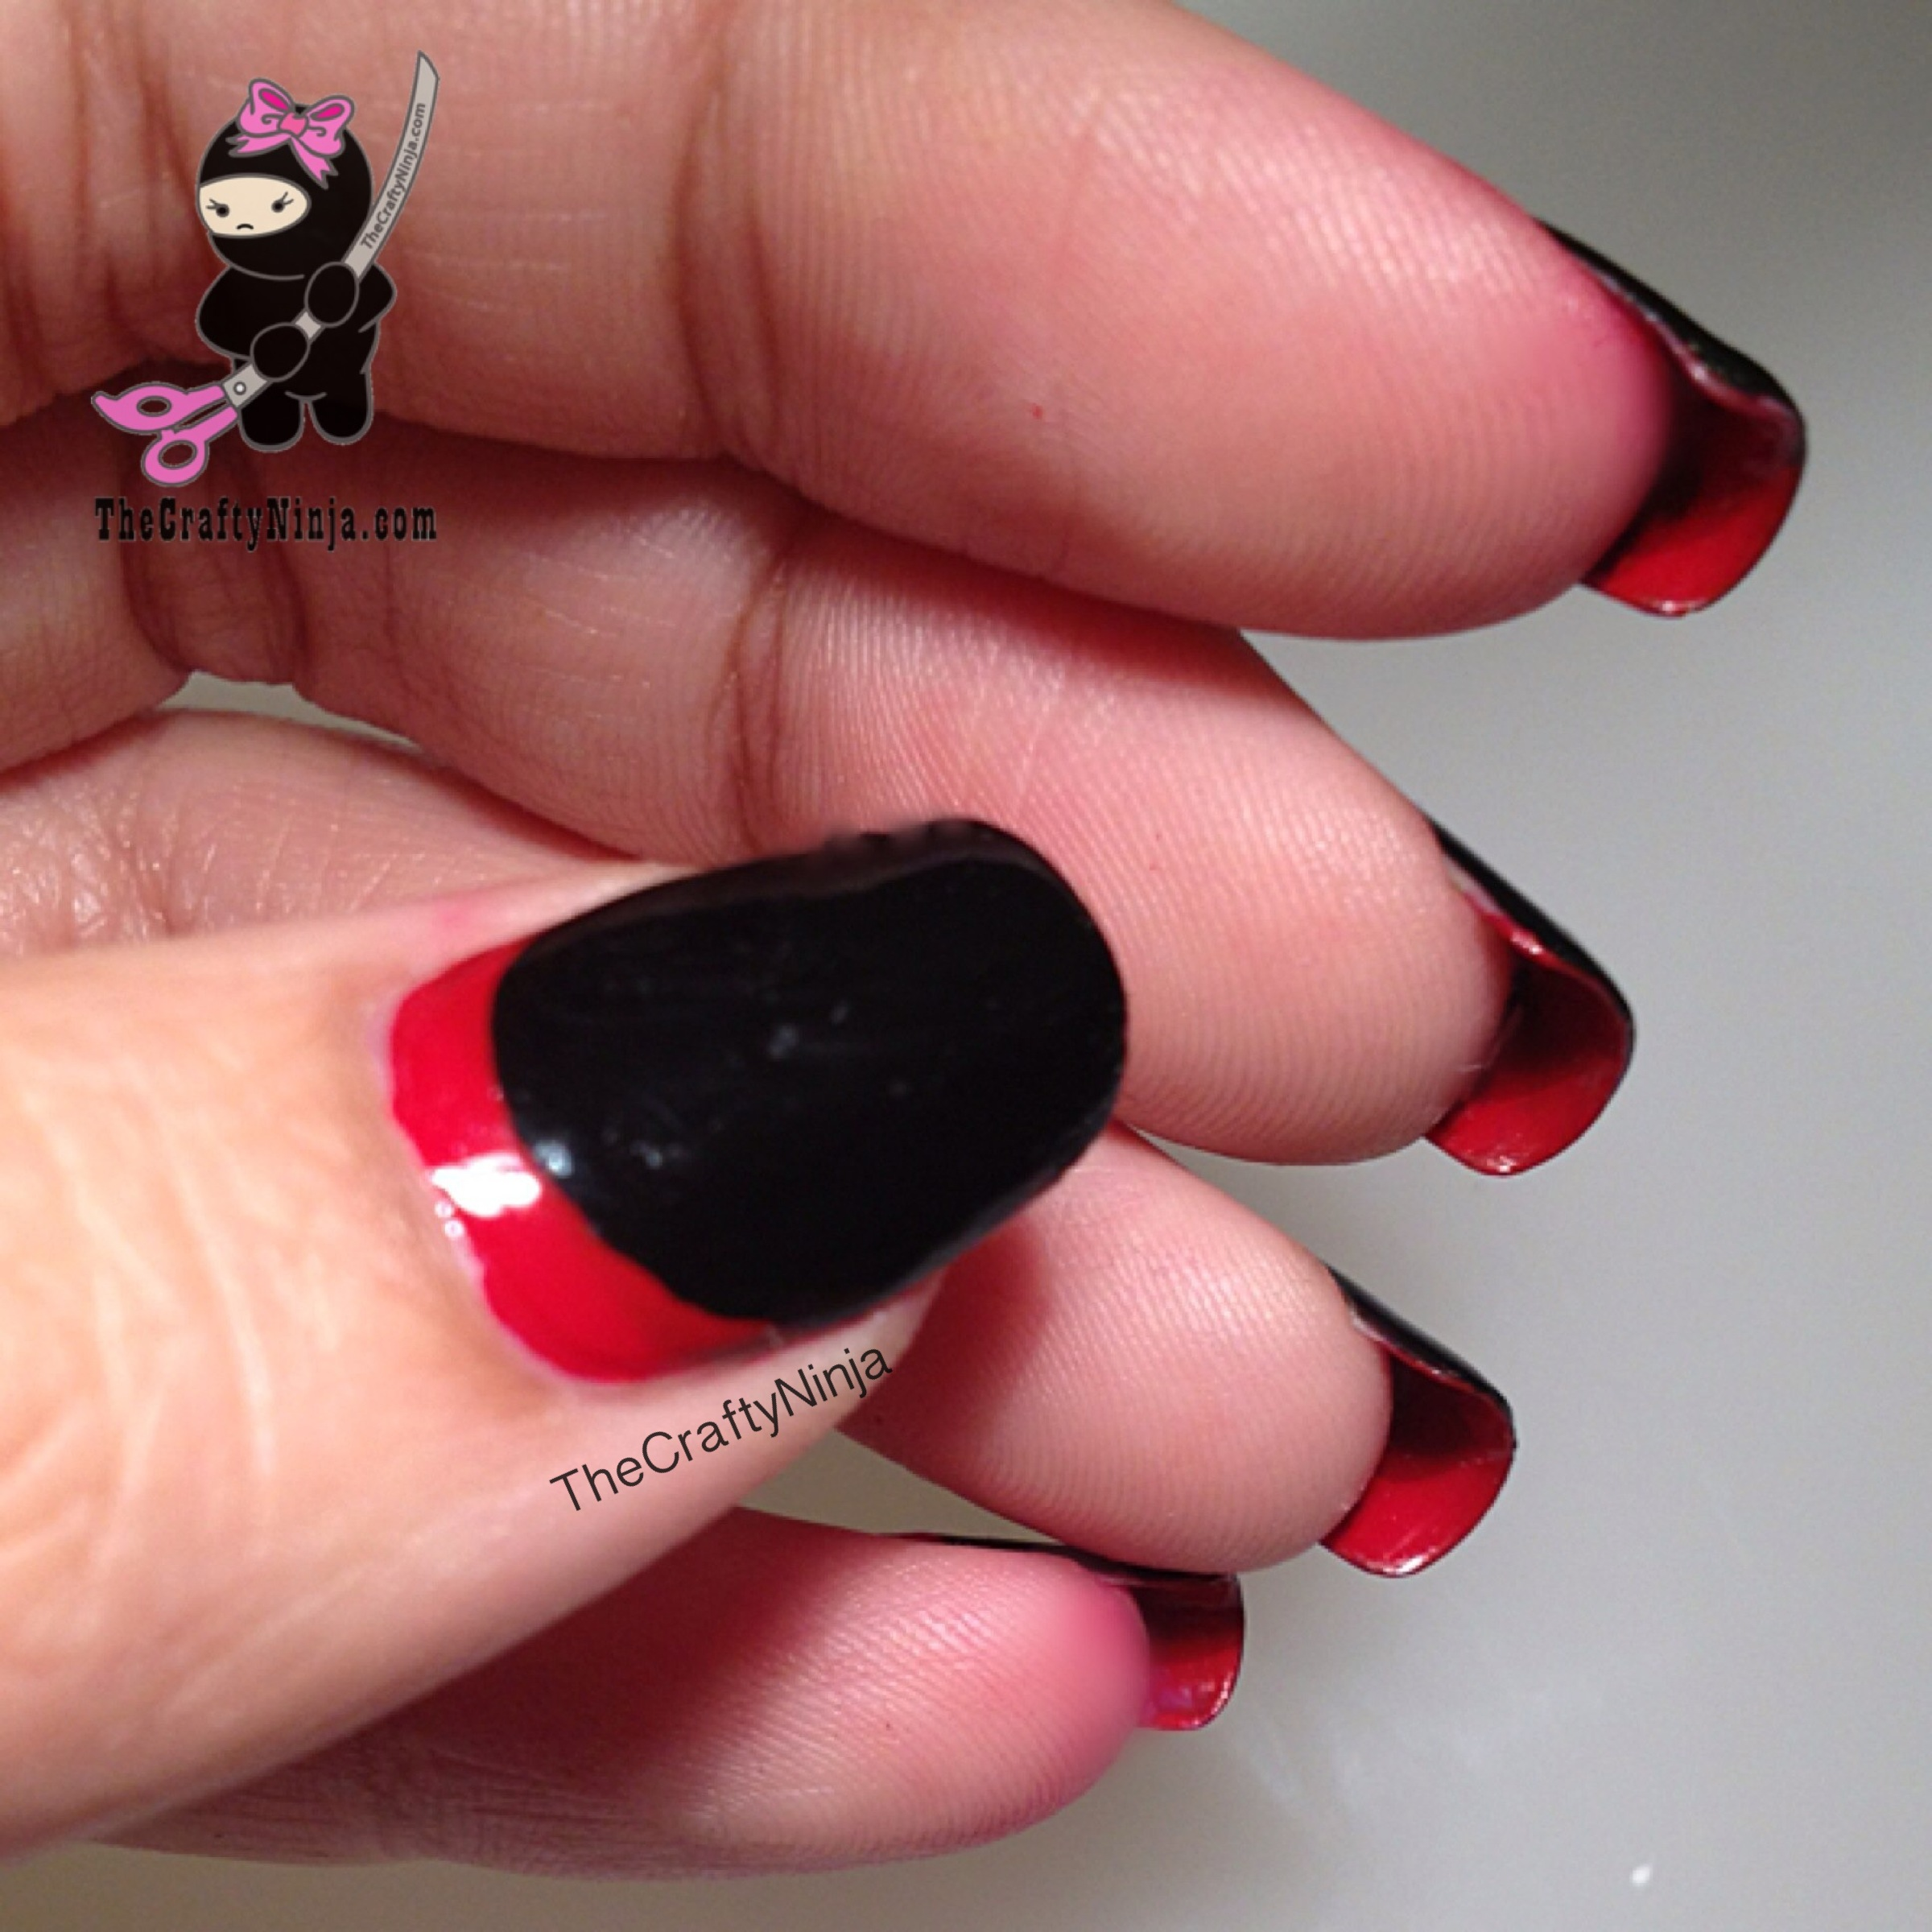 Christian Louboutin Nails | The Crafty Ninja